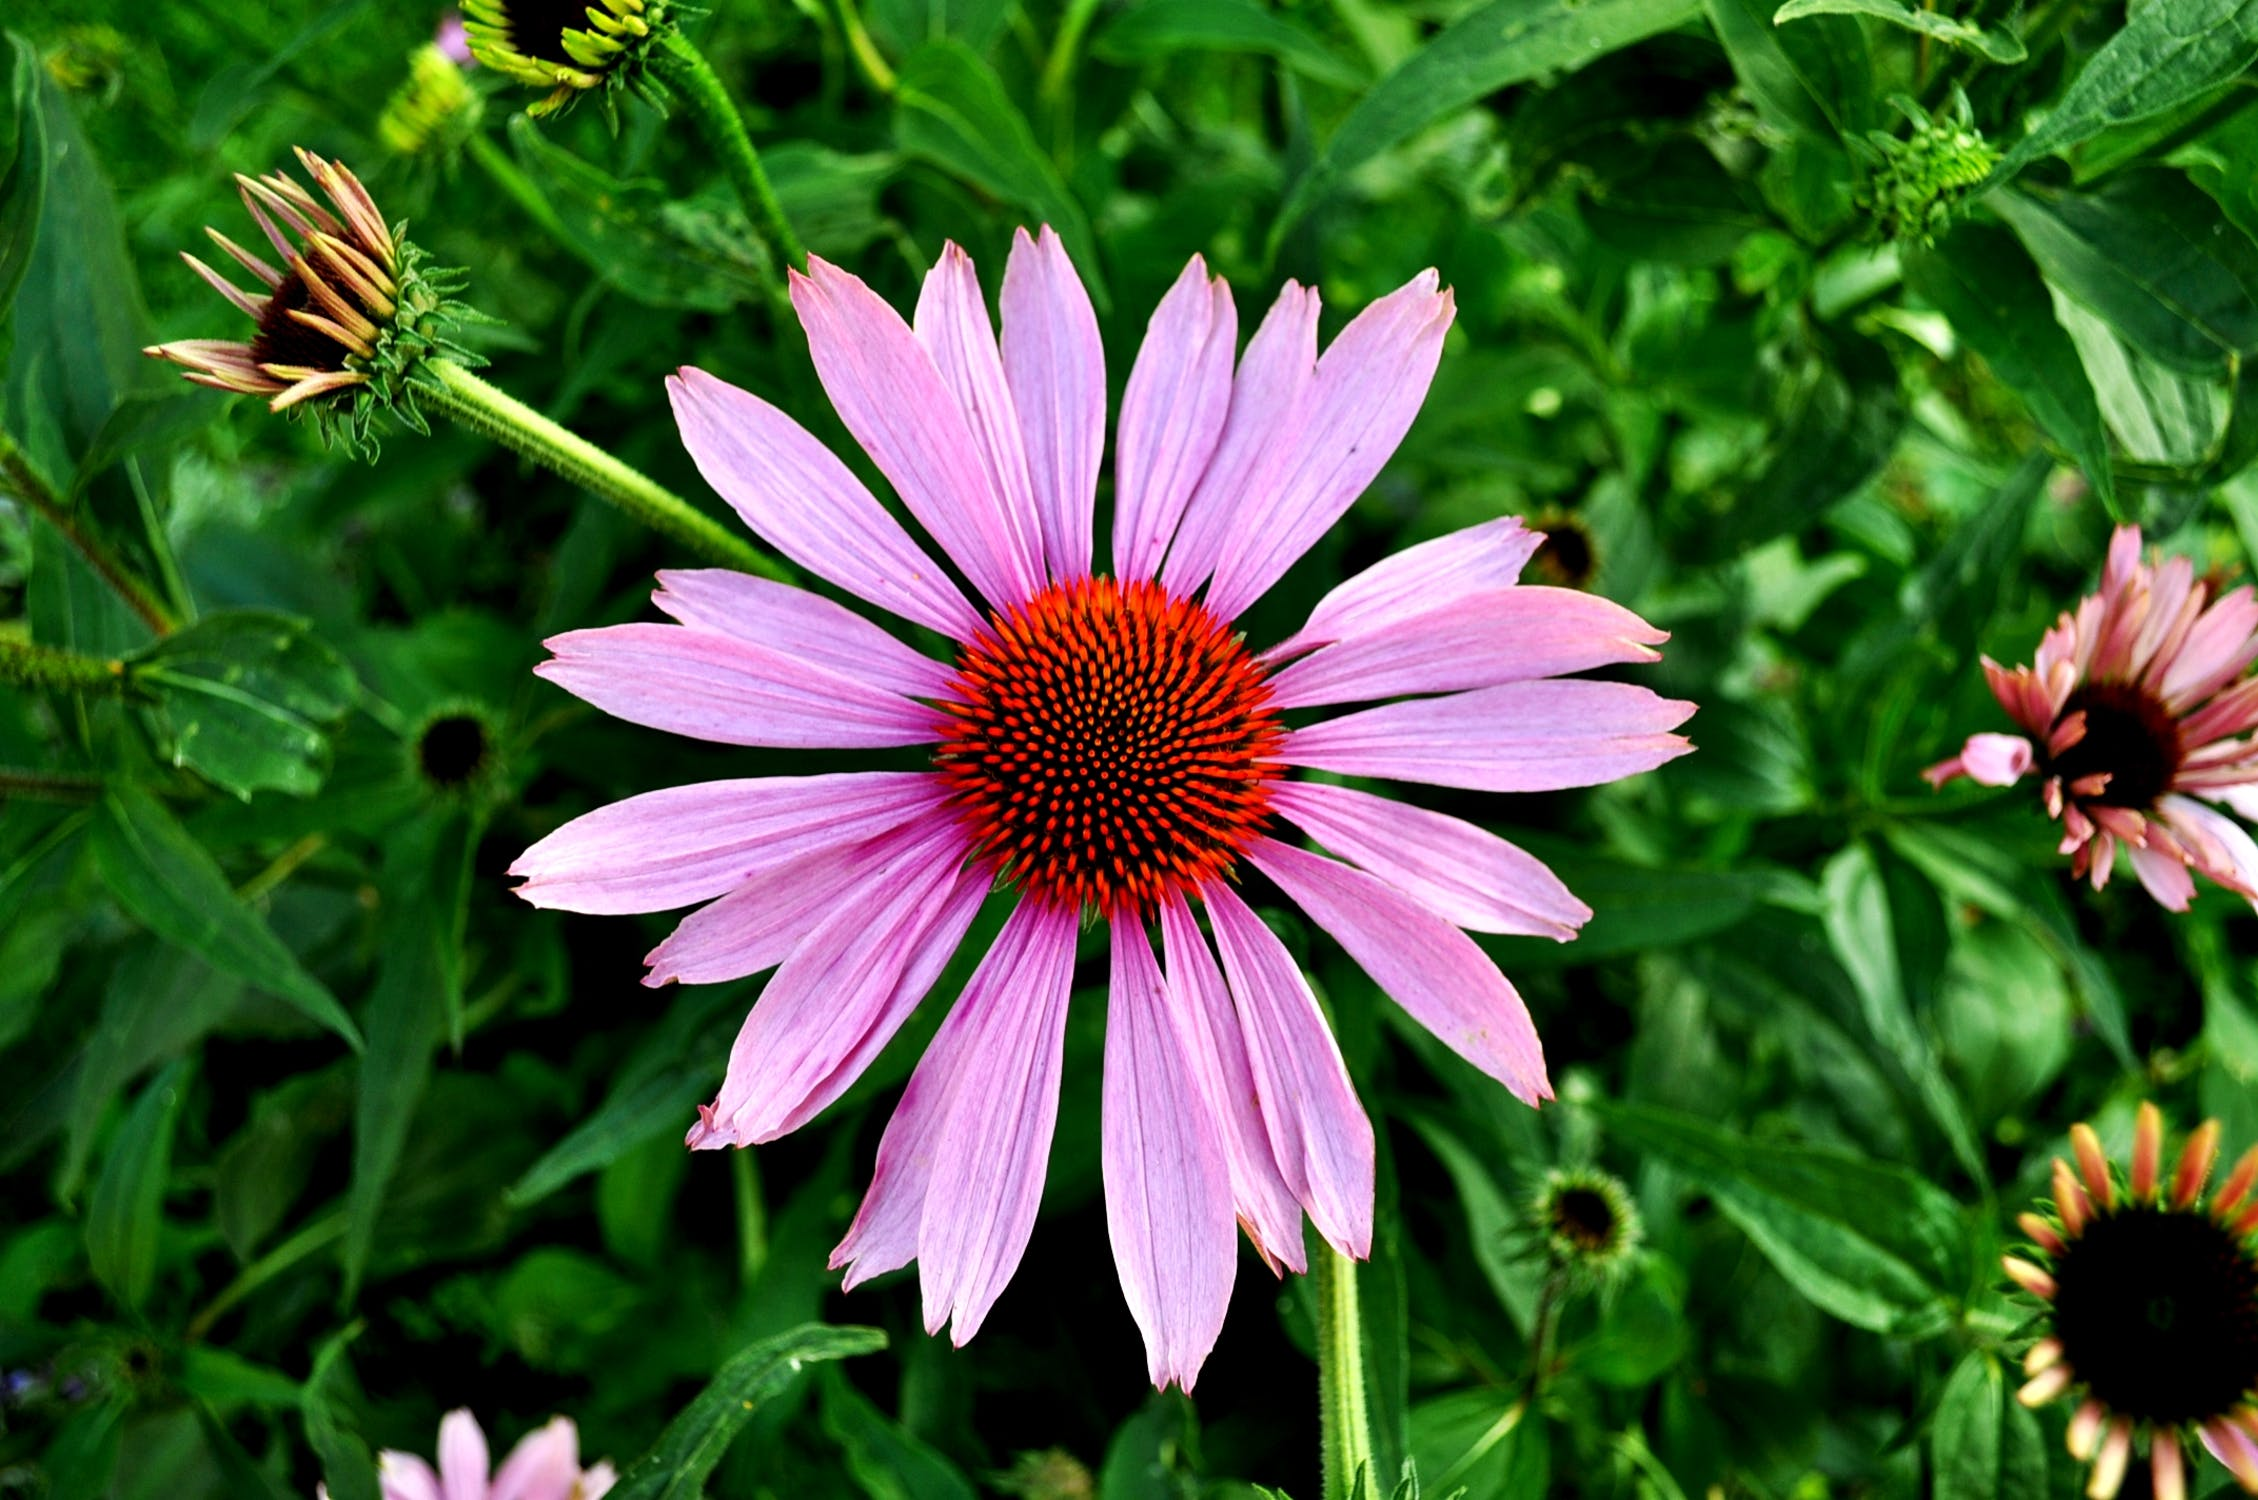 The Ultimate Guide To Echinacea Tea Benefits Side Effects And